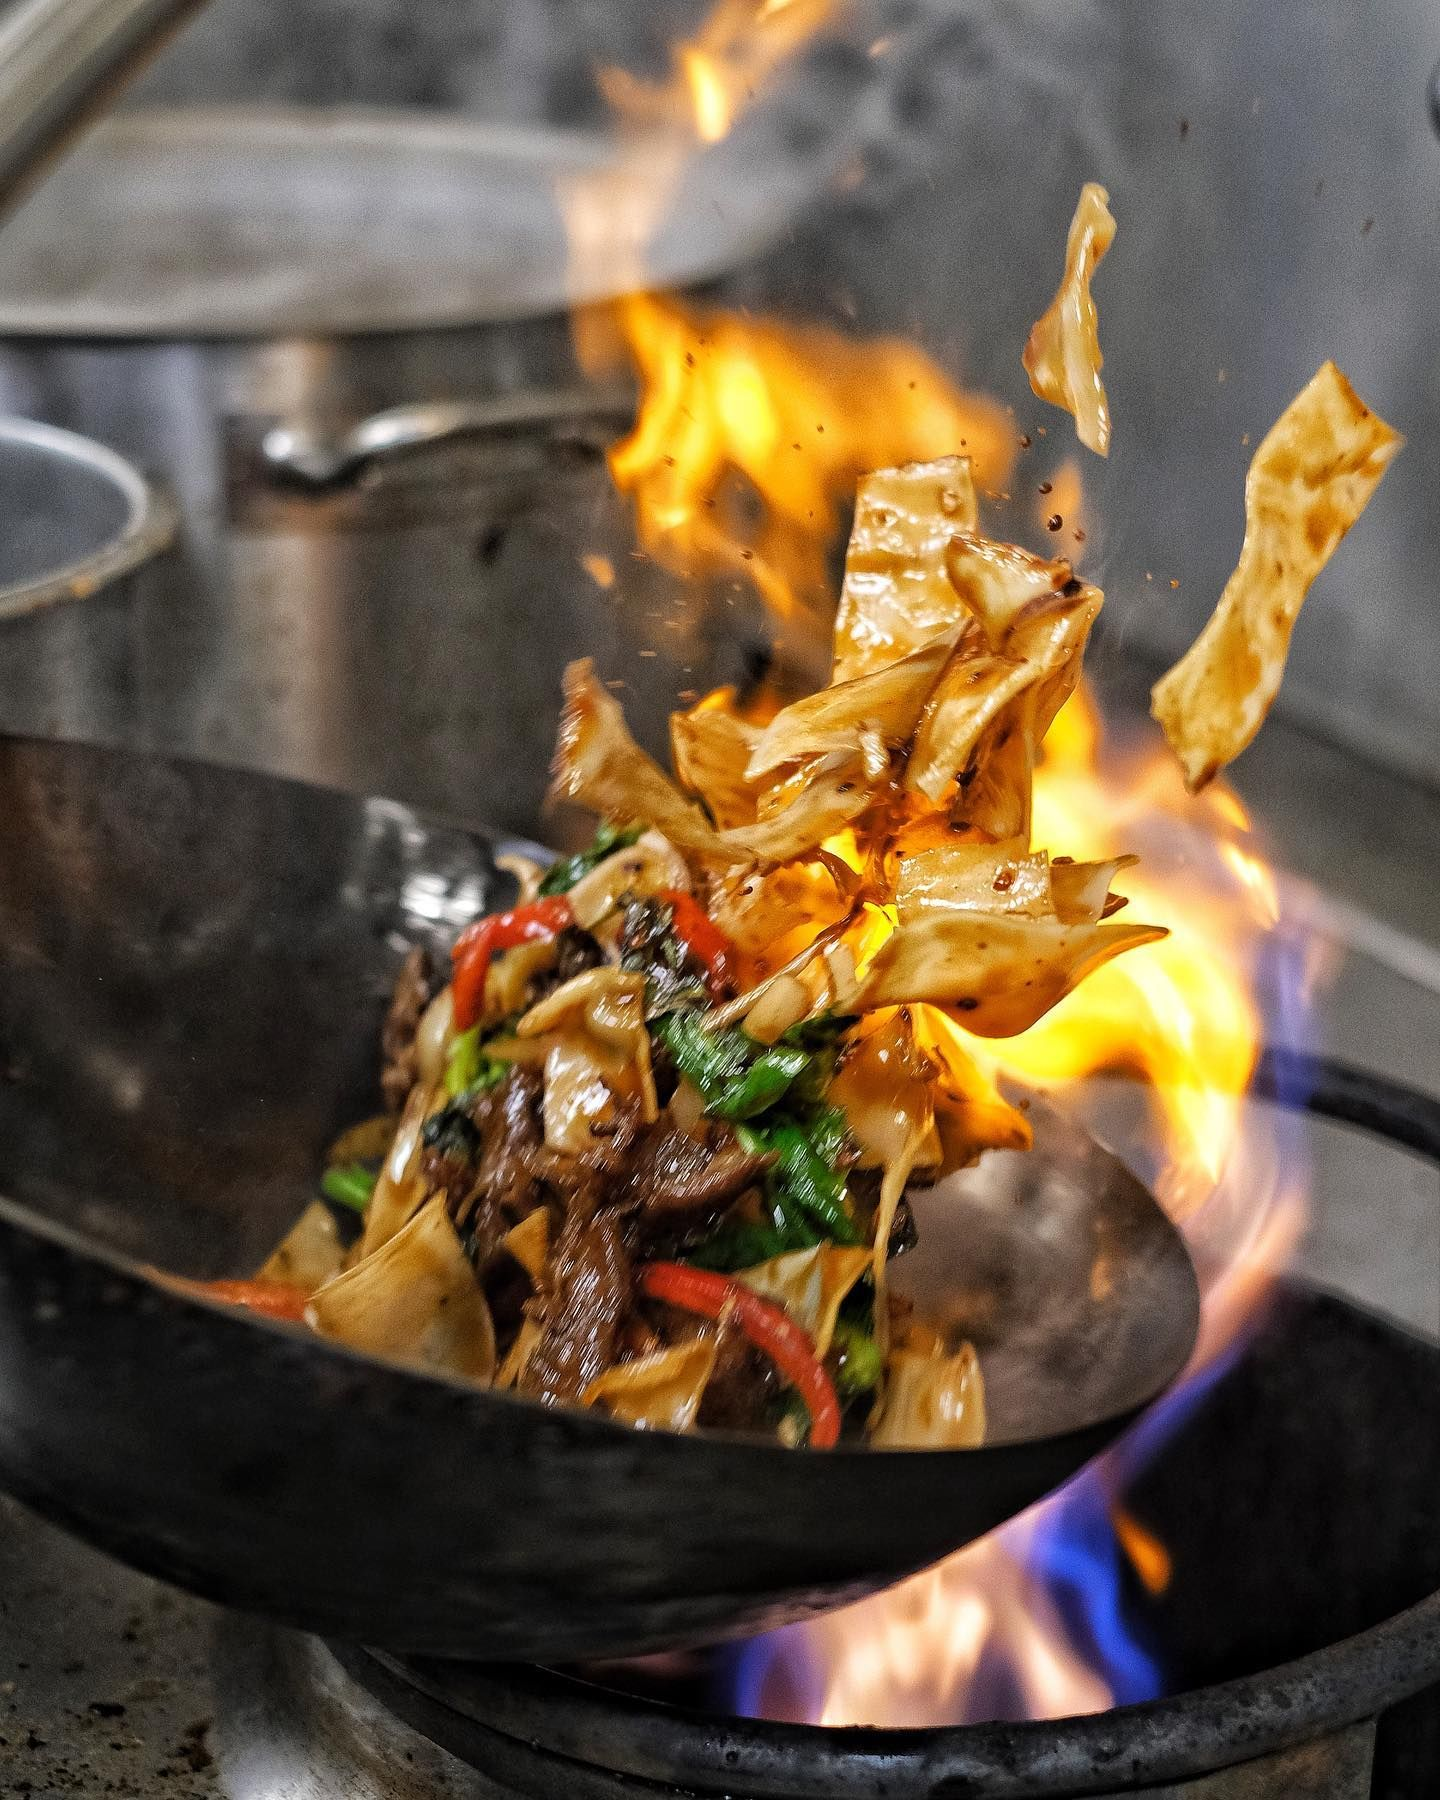 Happy Fri Yay The Wok Is Fired Up And Ready To Serve You The Best Chinese Delivery And Carry Out In Town Free Delivery No Tipping Di 2020 Makanan Desain